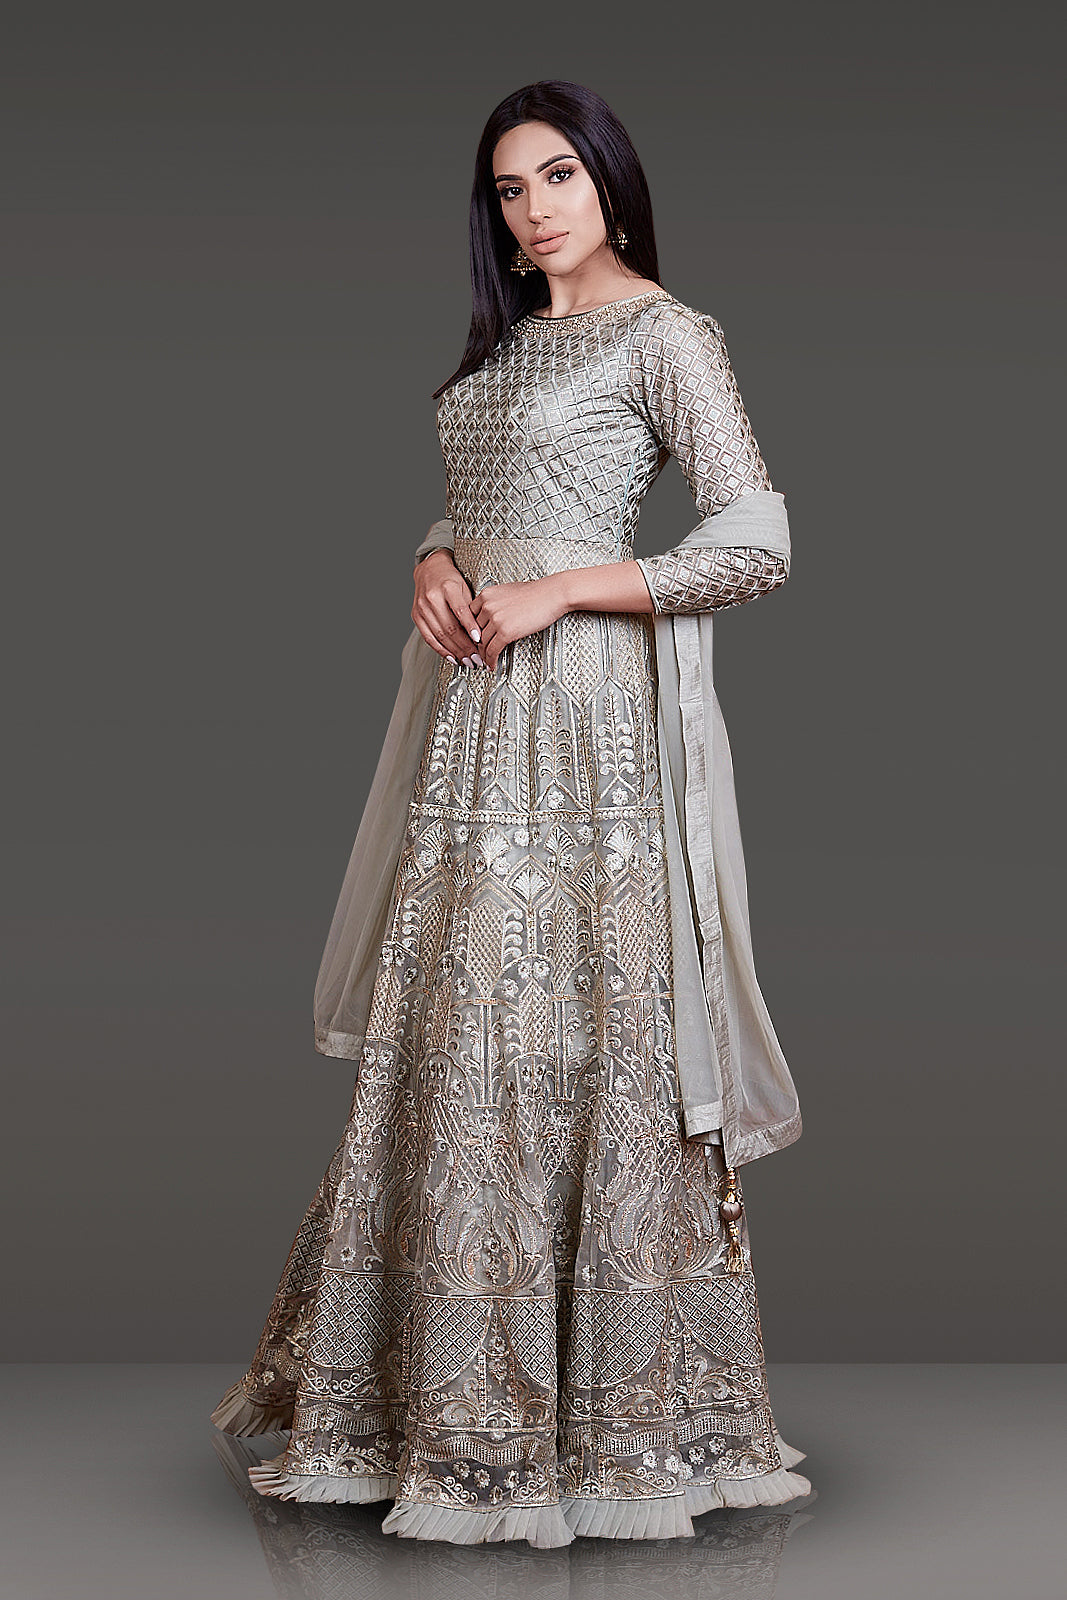 OLIVE GREEN COLOR TONE TO TONE THREAD WORK ANARKALI WITH ZARI HIGHLIGHTING AND NET DUPATTA PAIRED WITH LYCRA CHURIDAR